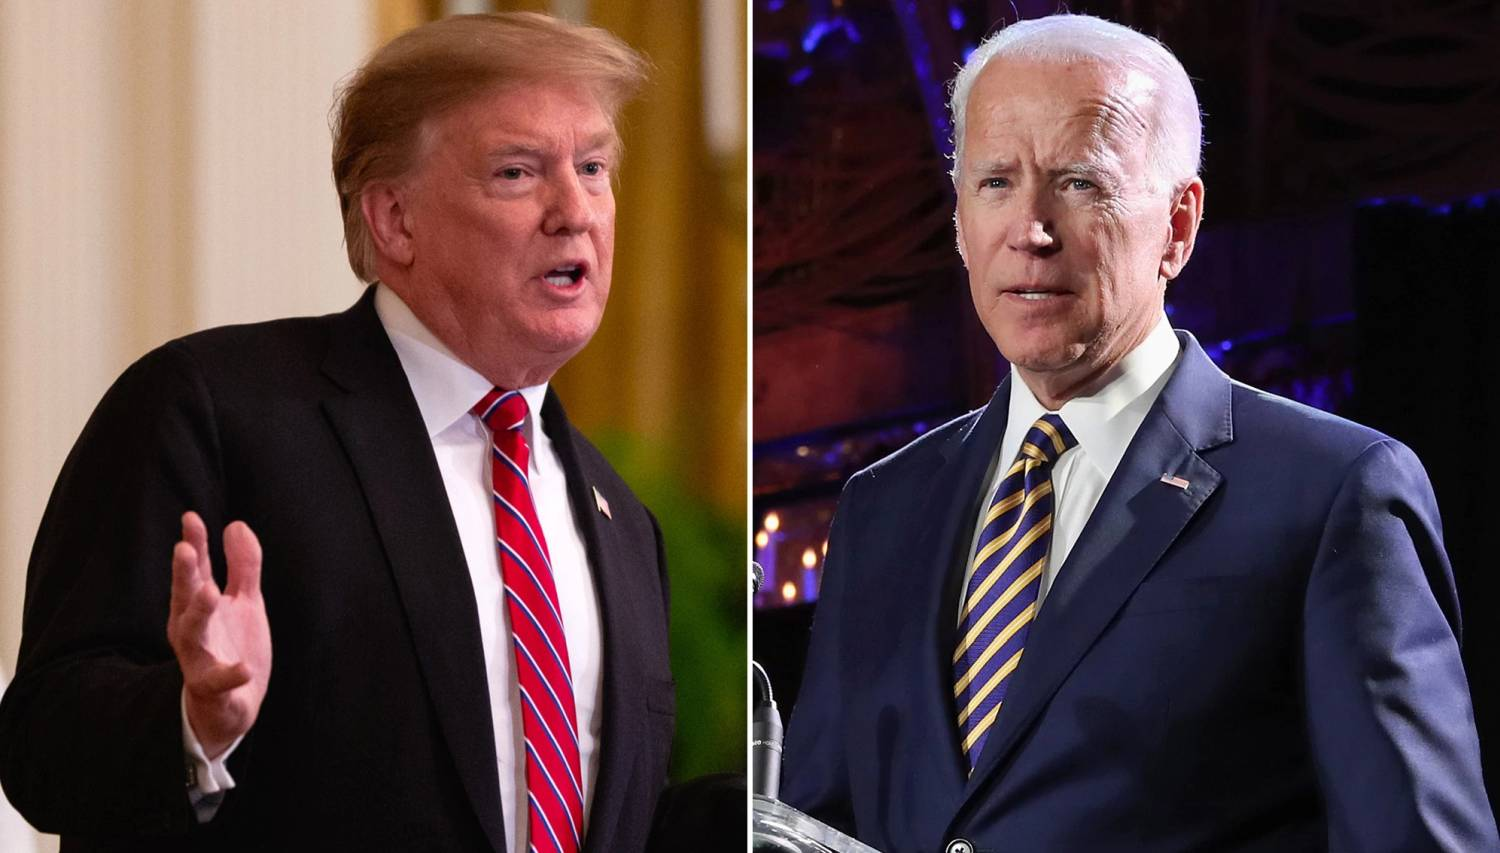 New poll: 43% of Democratic primary voters in Missouri favor Joe Biden